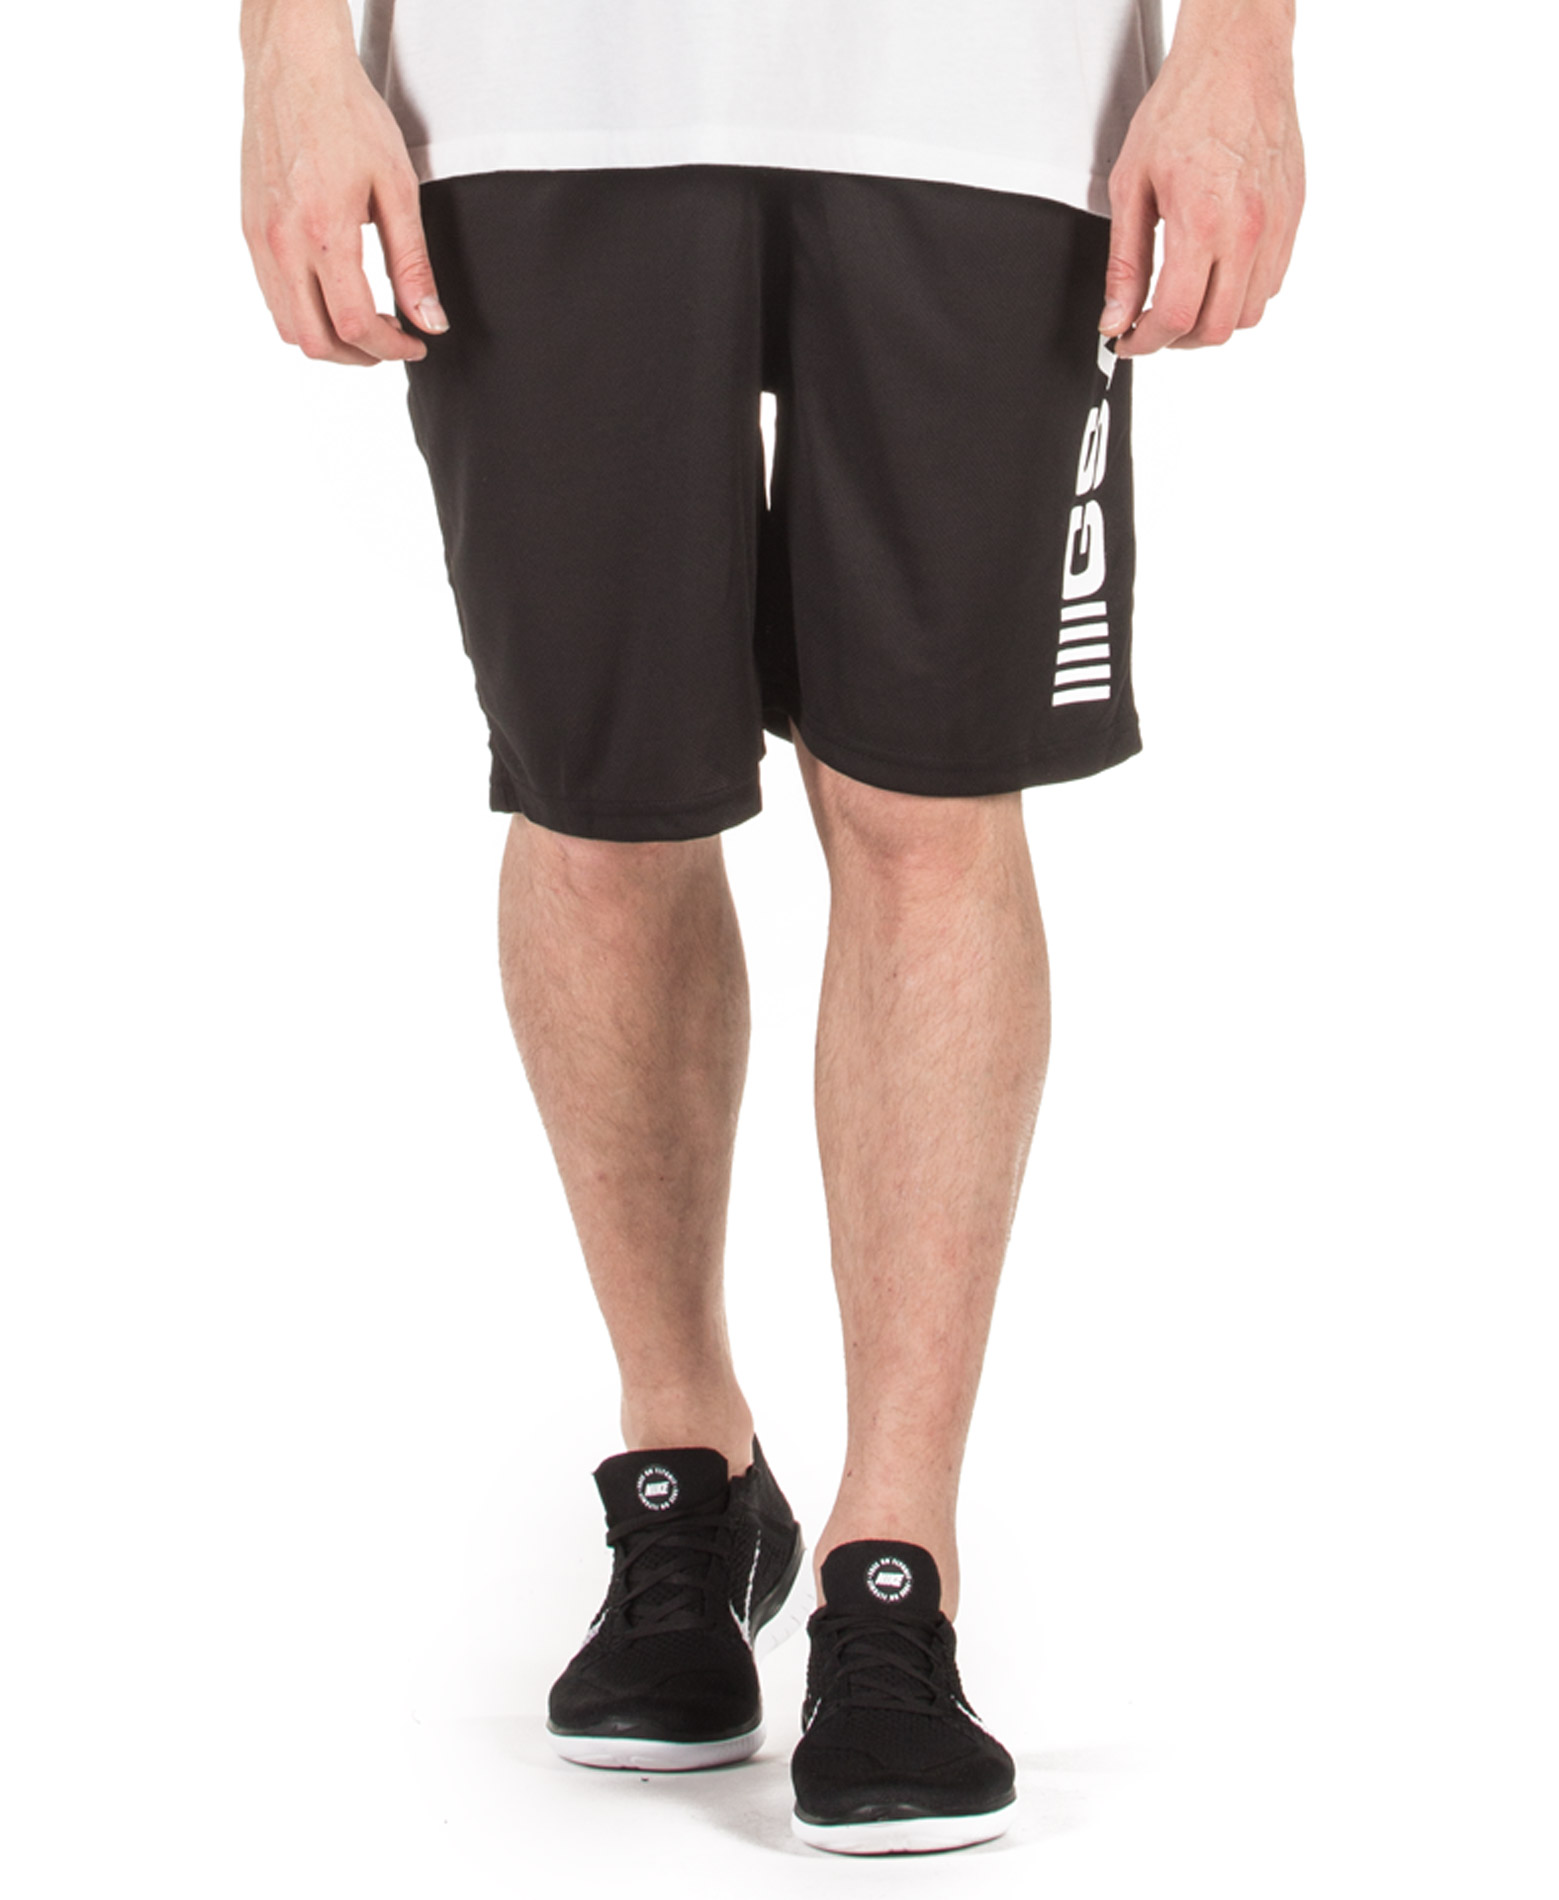 GSA SUPERLOGO ACTIVE 4/4 SHORTS 17-19062-JET BLACK 01 Μαύρο